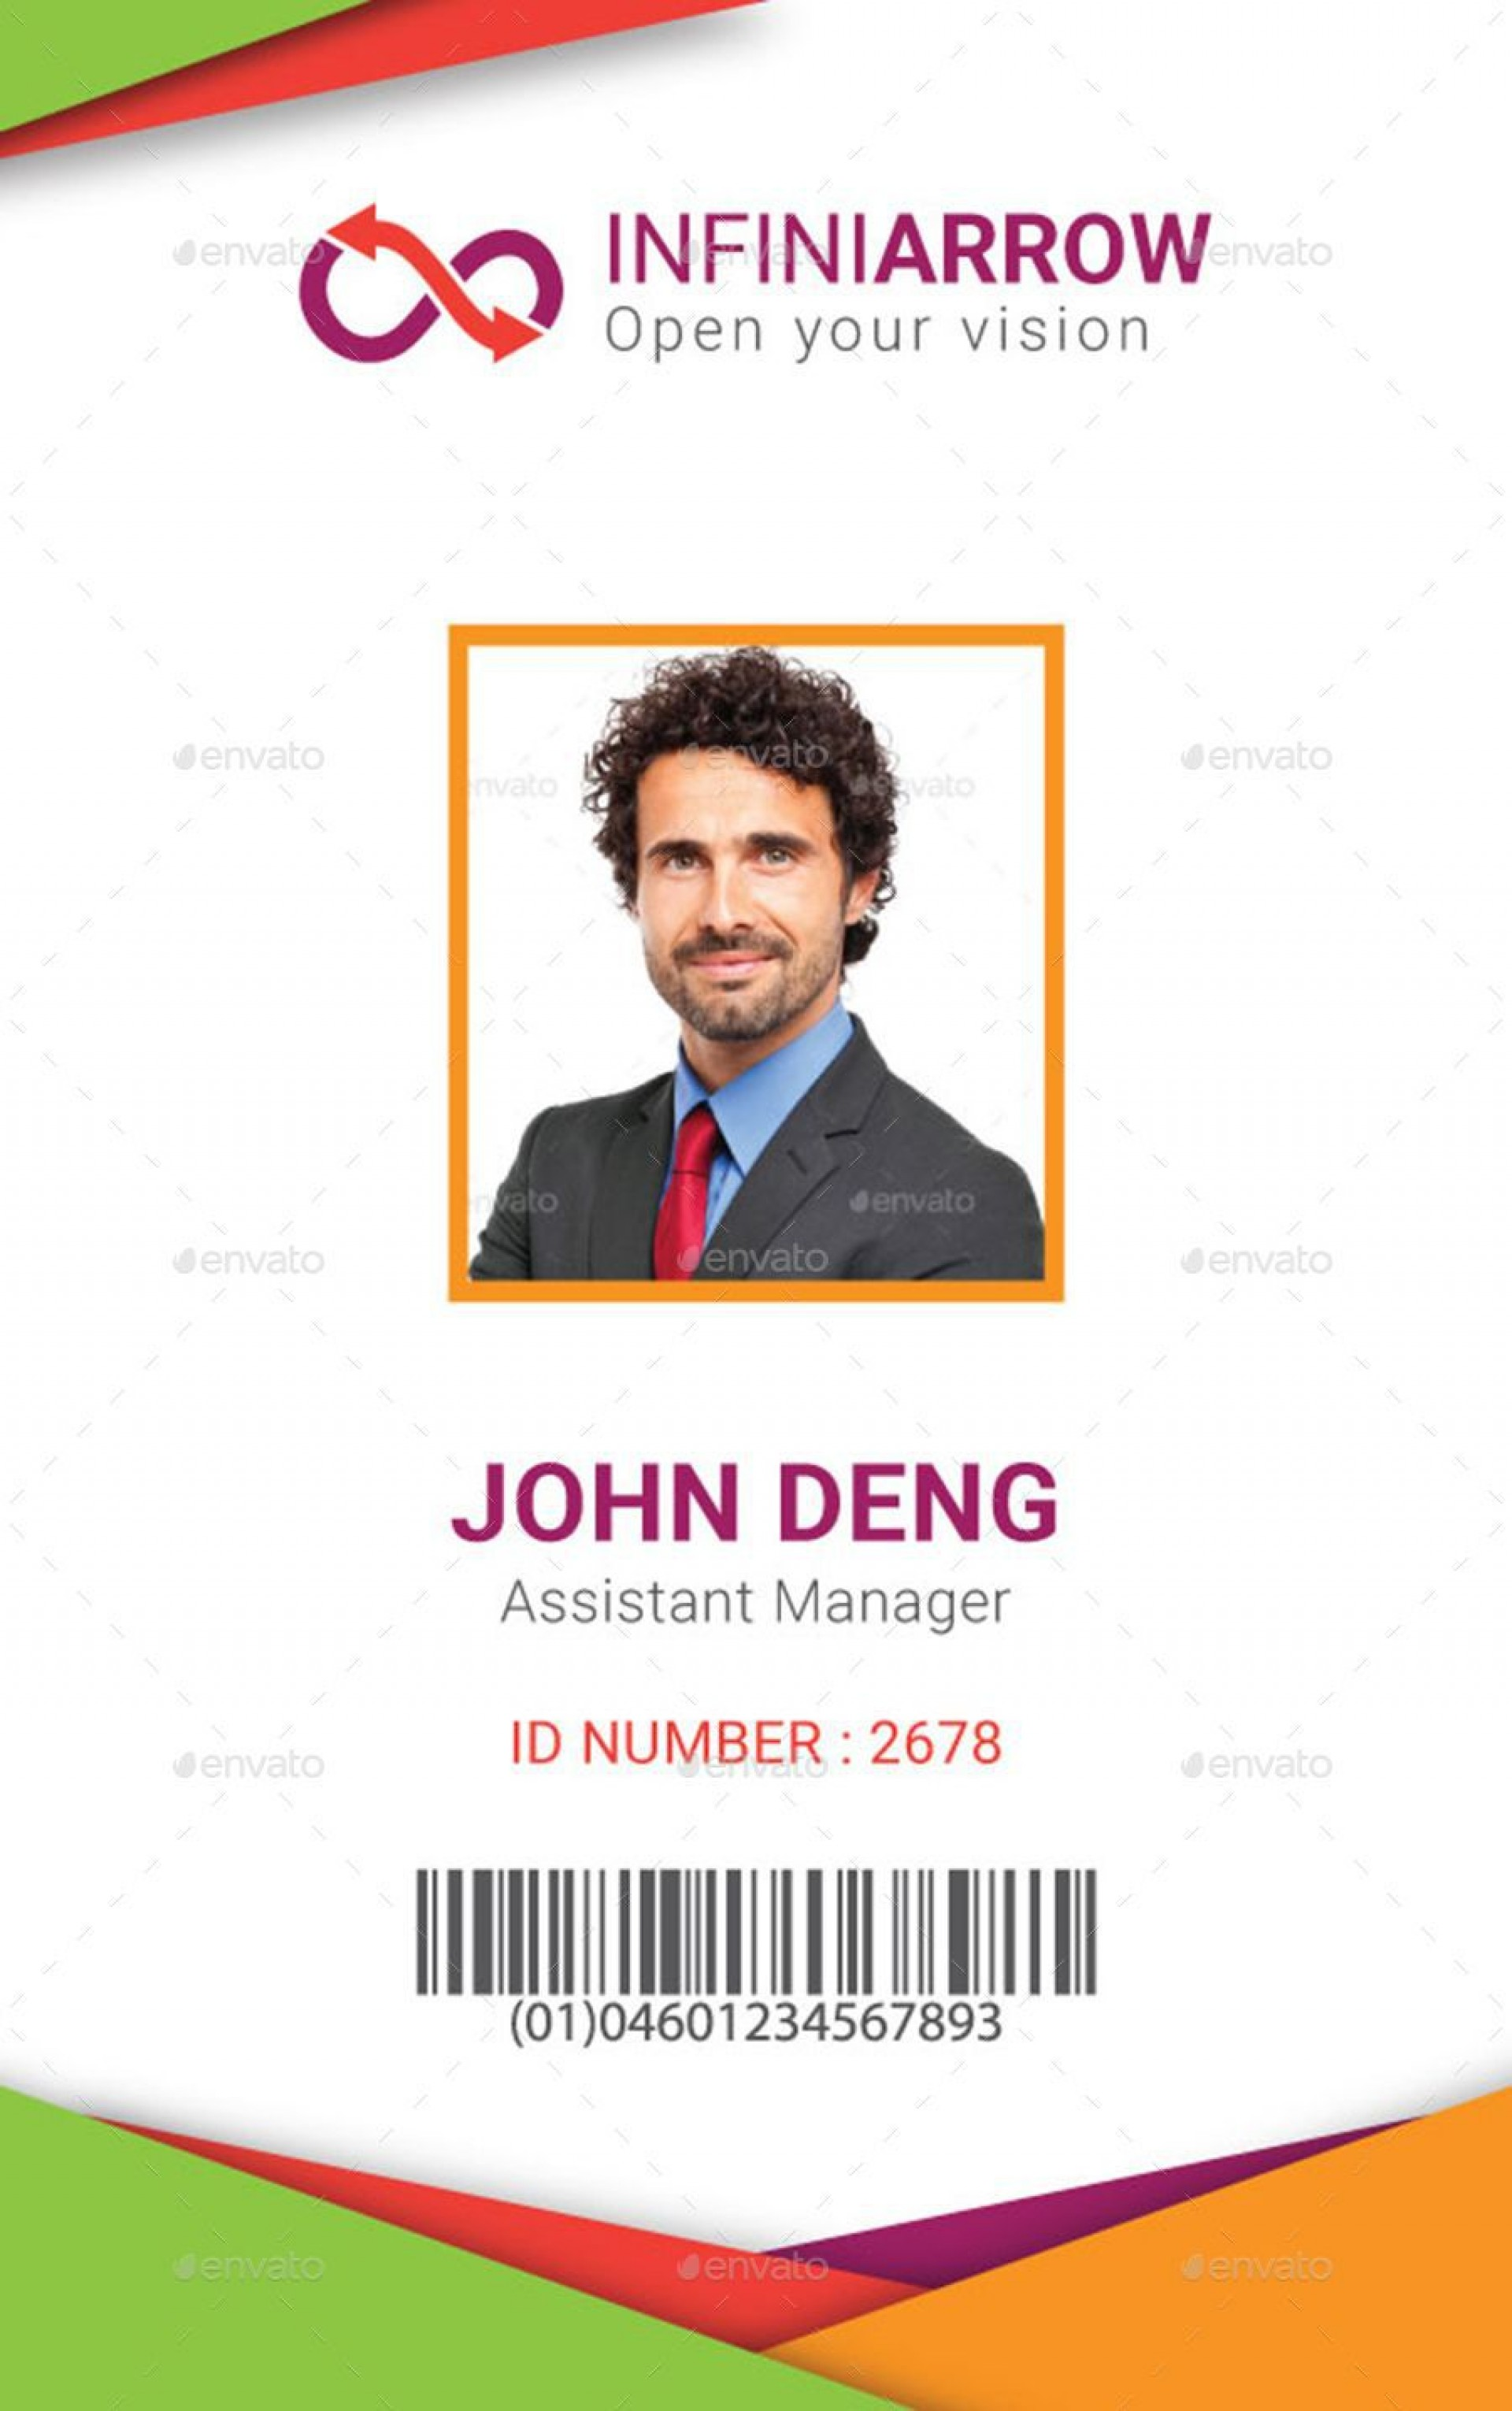 005 Amazing Id Badge Template Photoshop Example  Employee1920